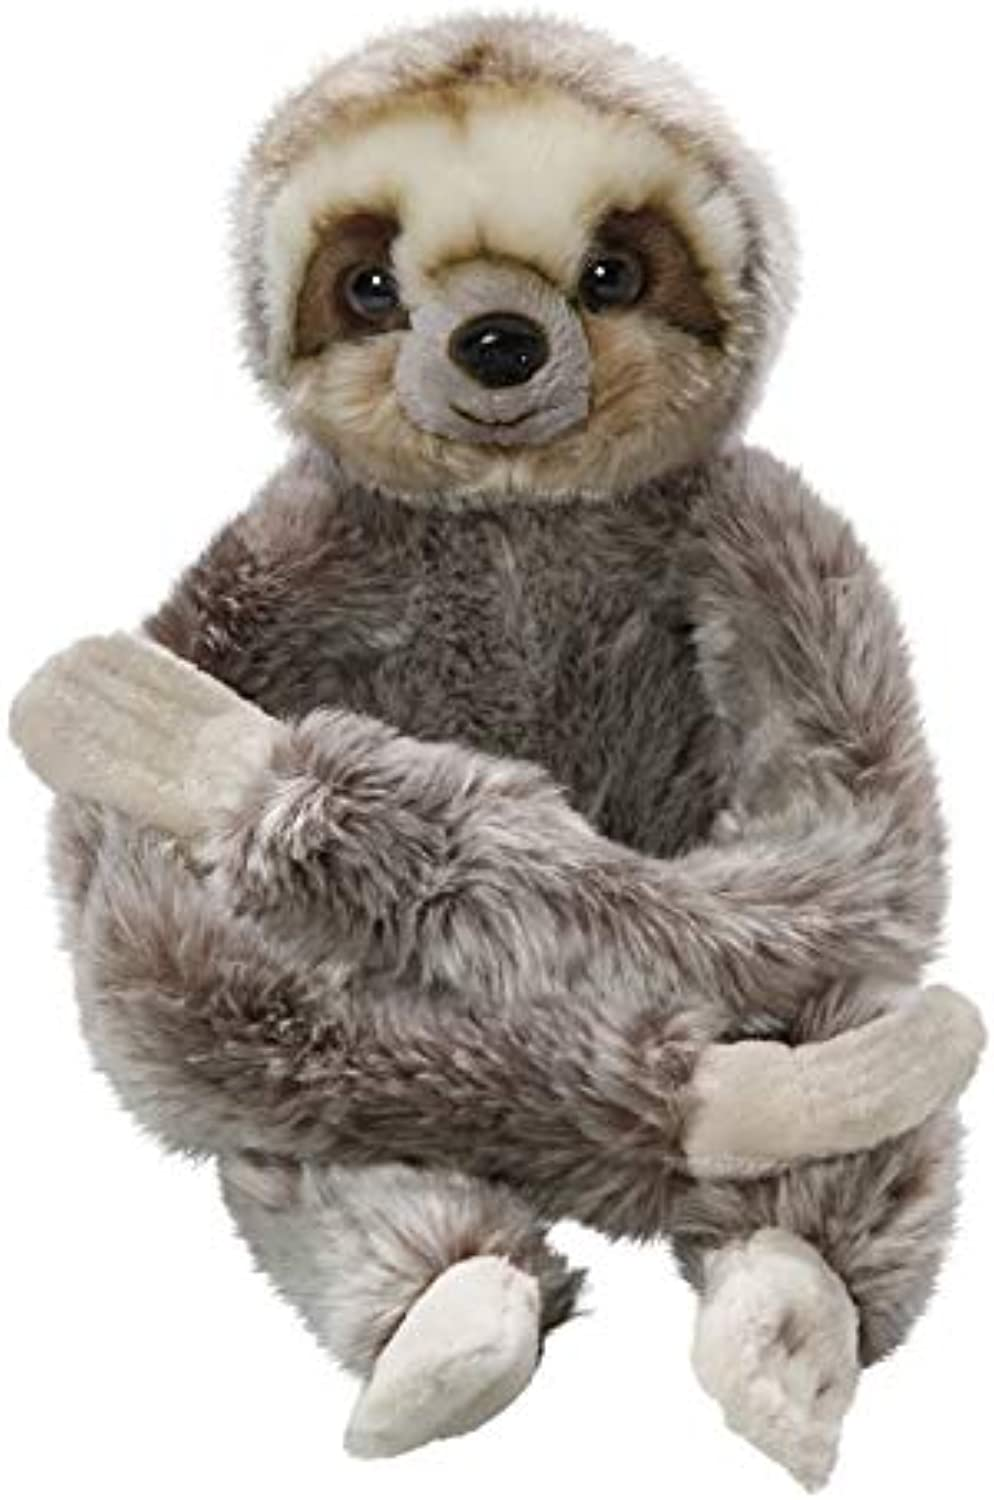 Sloth 8 inches Sitting, 20 inches Hanging, 22cm Sitting, 53cm Hanging, Plush Toy, Soft Toy, Stuffed Animal 3418